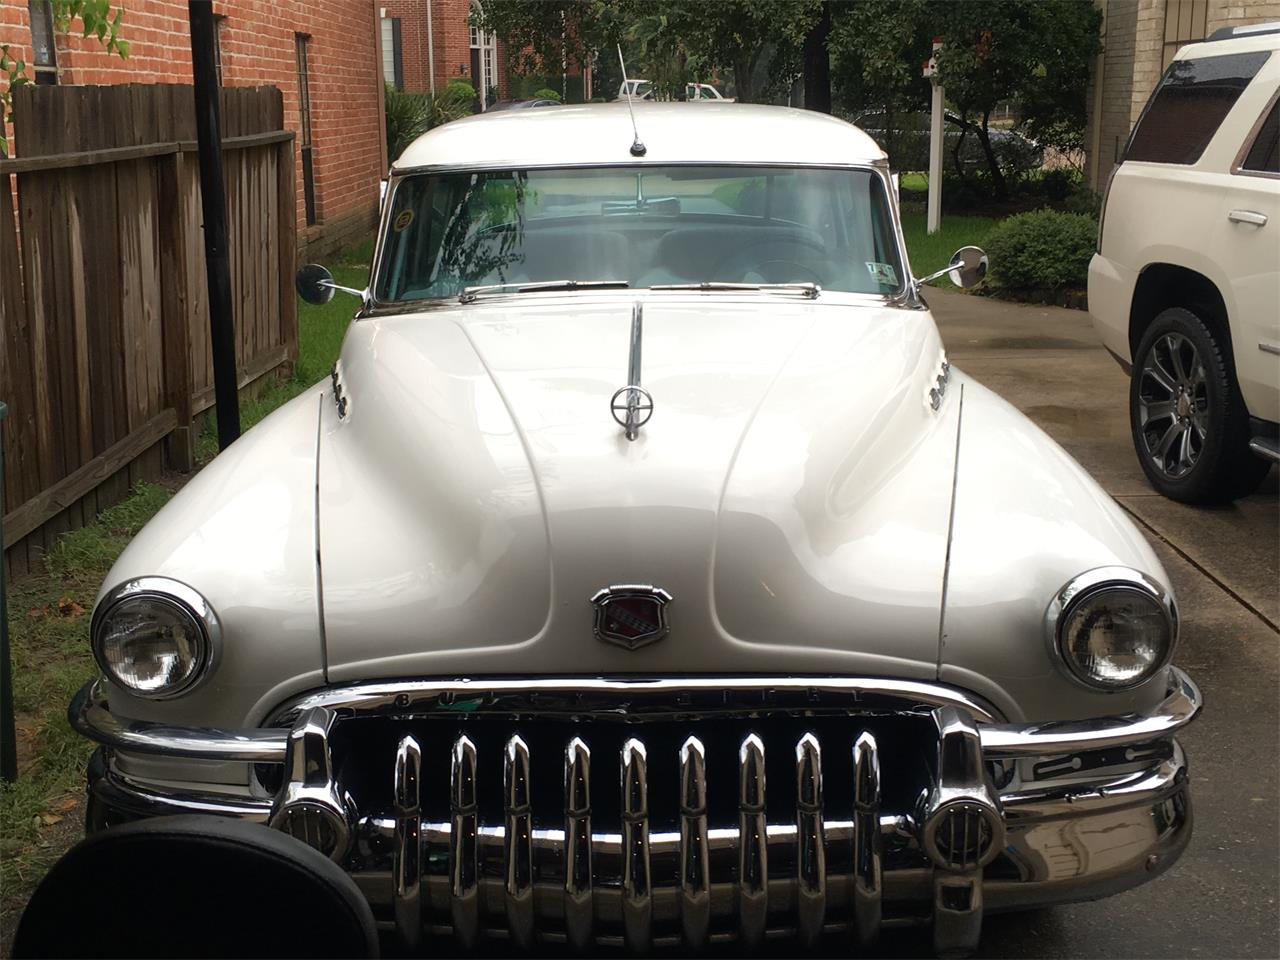 1950 Buick Roadmaster for Sale | ClassicCars.com | CC-11115941950s Cars For Sale Texas